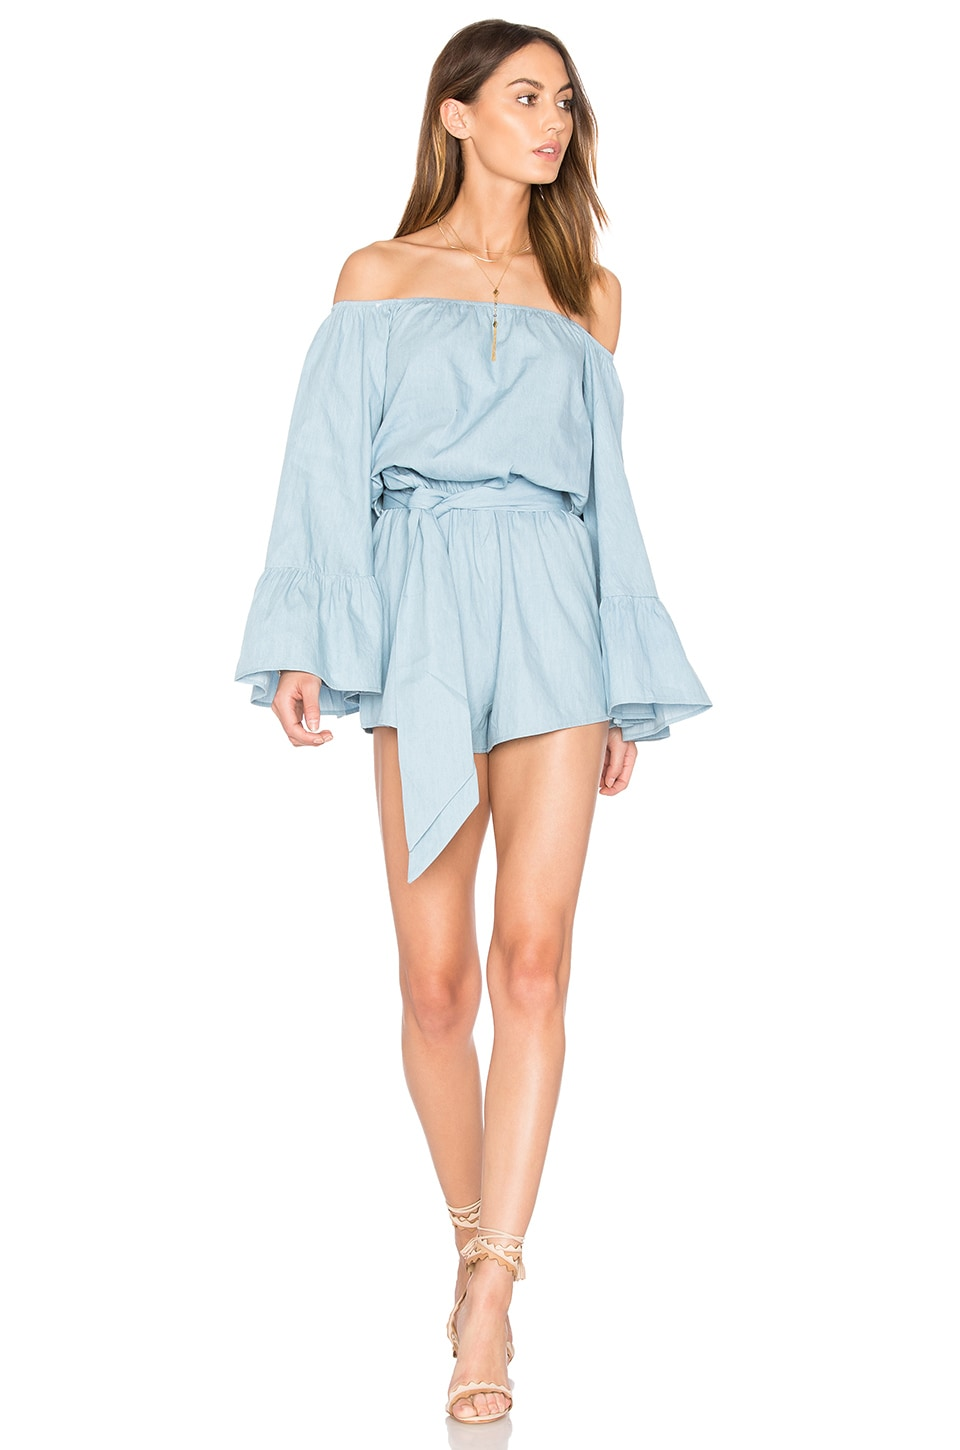 LIONESS Del Rio Off Shoulder Romper in Chambray